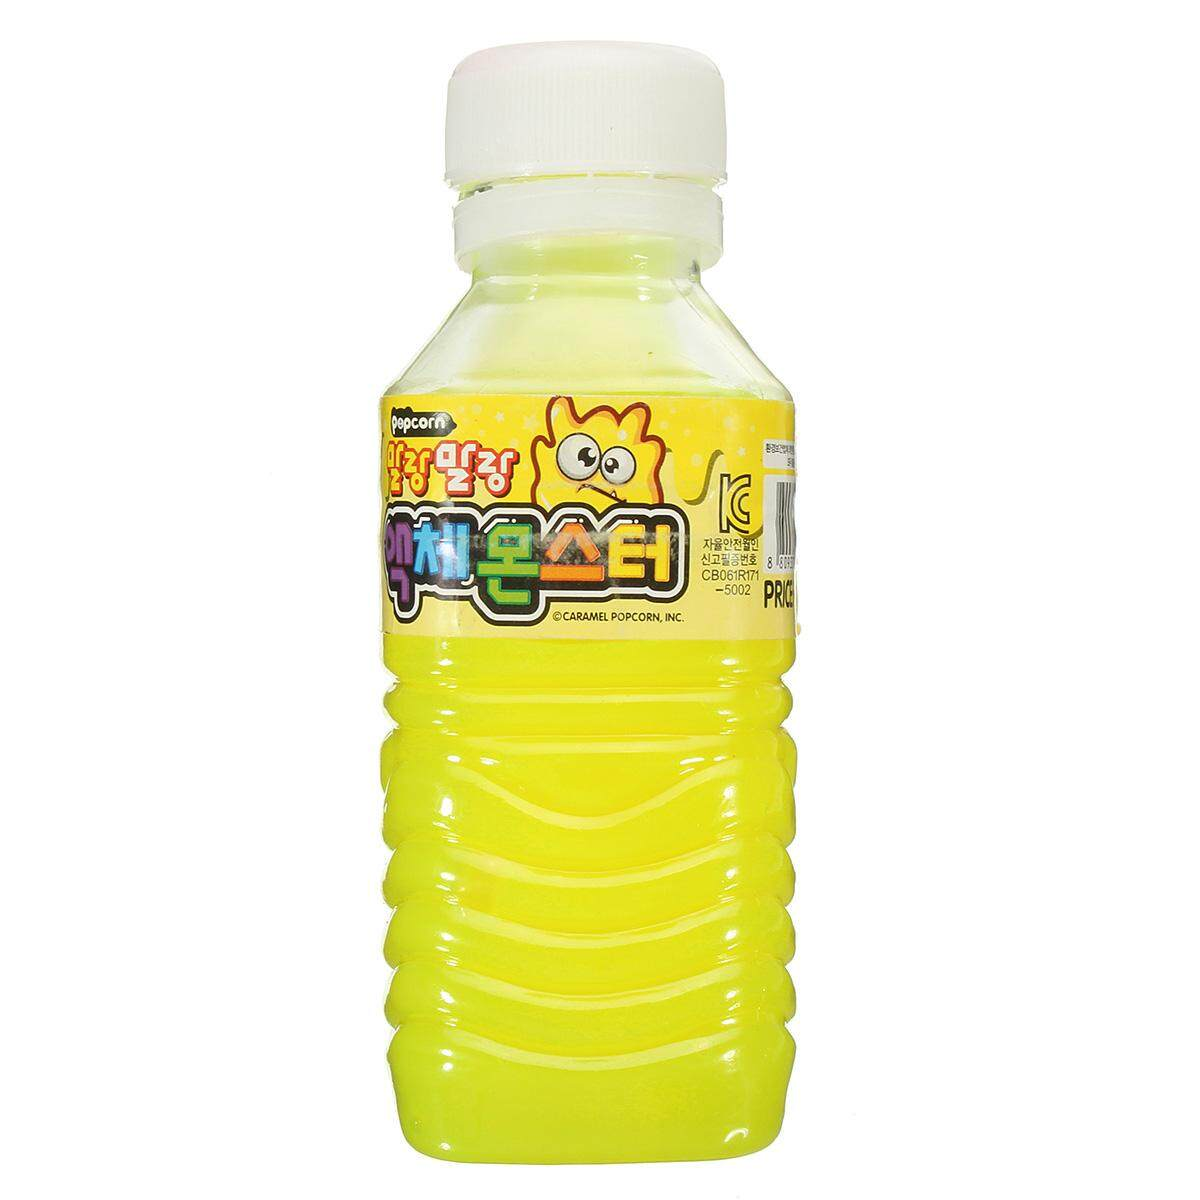 100ml Colorful Slime Joke Gag Prank Toy Drums Creative Trick Party Favor Gift By Audew.